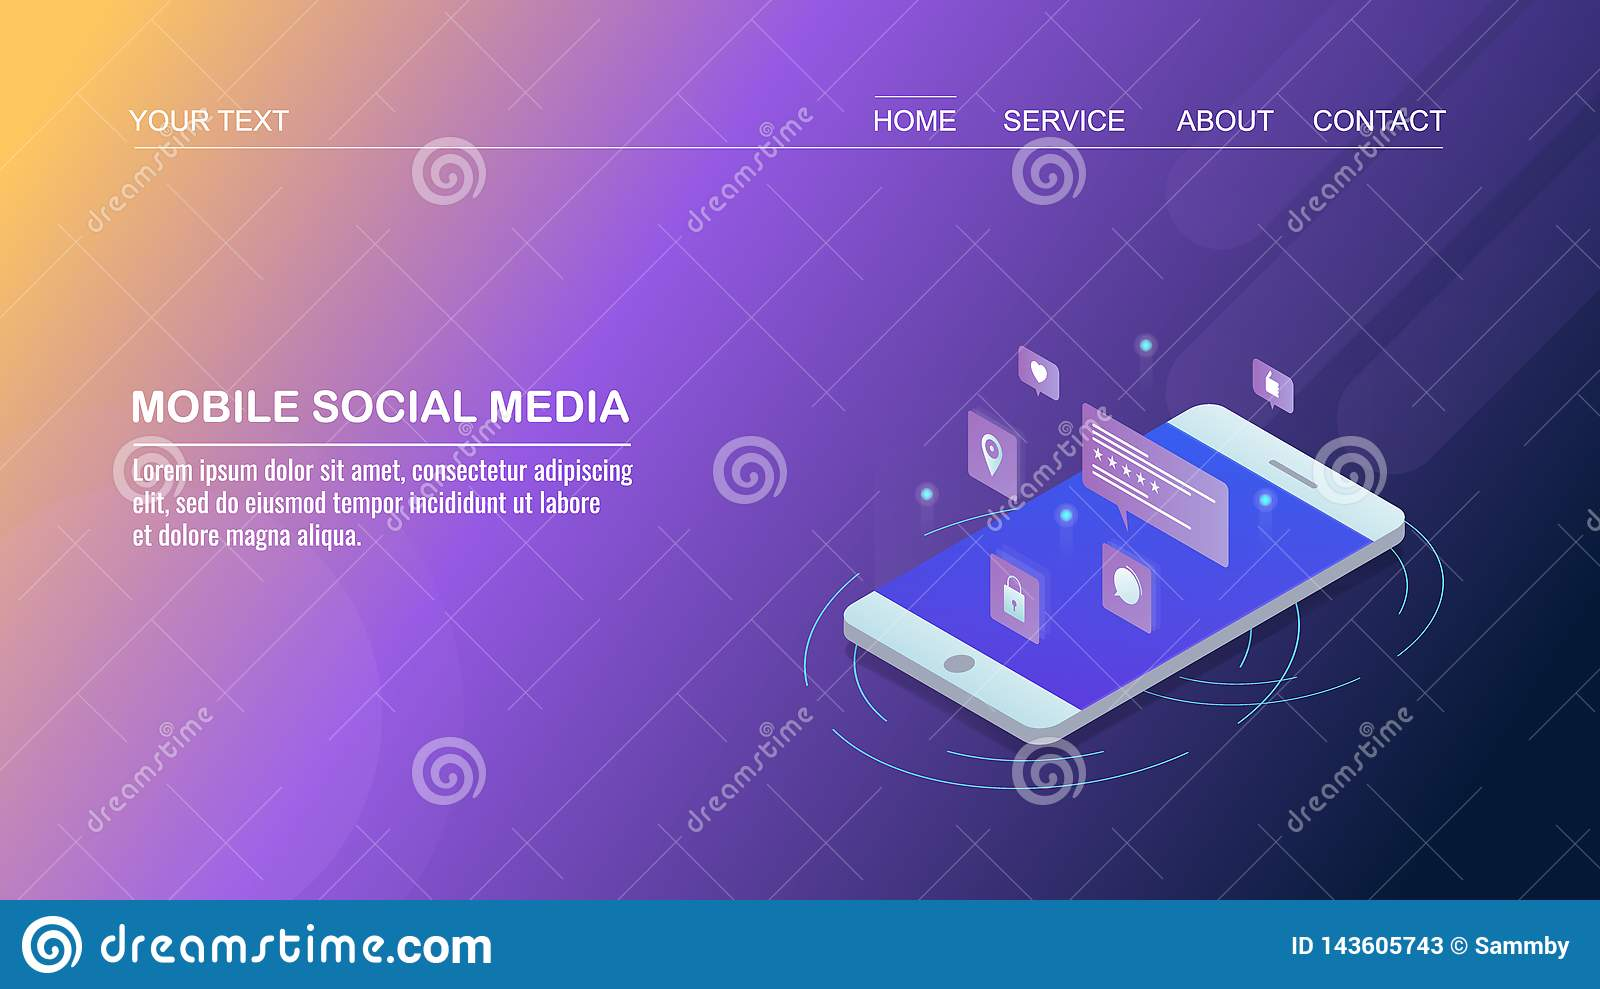 Social Media Marketing On Mobile Social Networking App Digital Marketing Isometric Design Concept Stock Vector Illustration Of Mobile Email 143605743